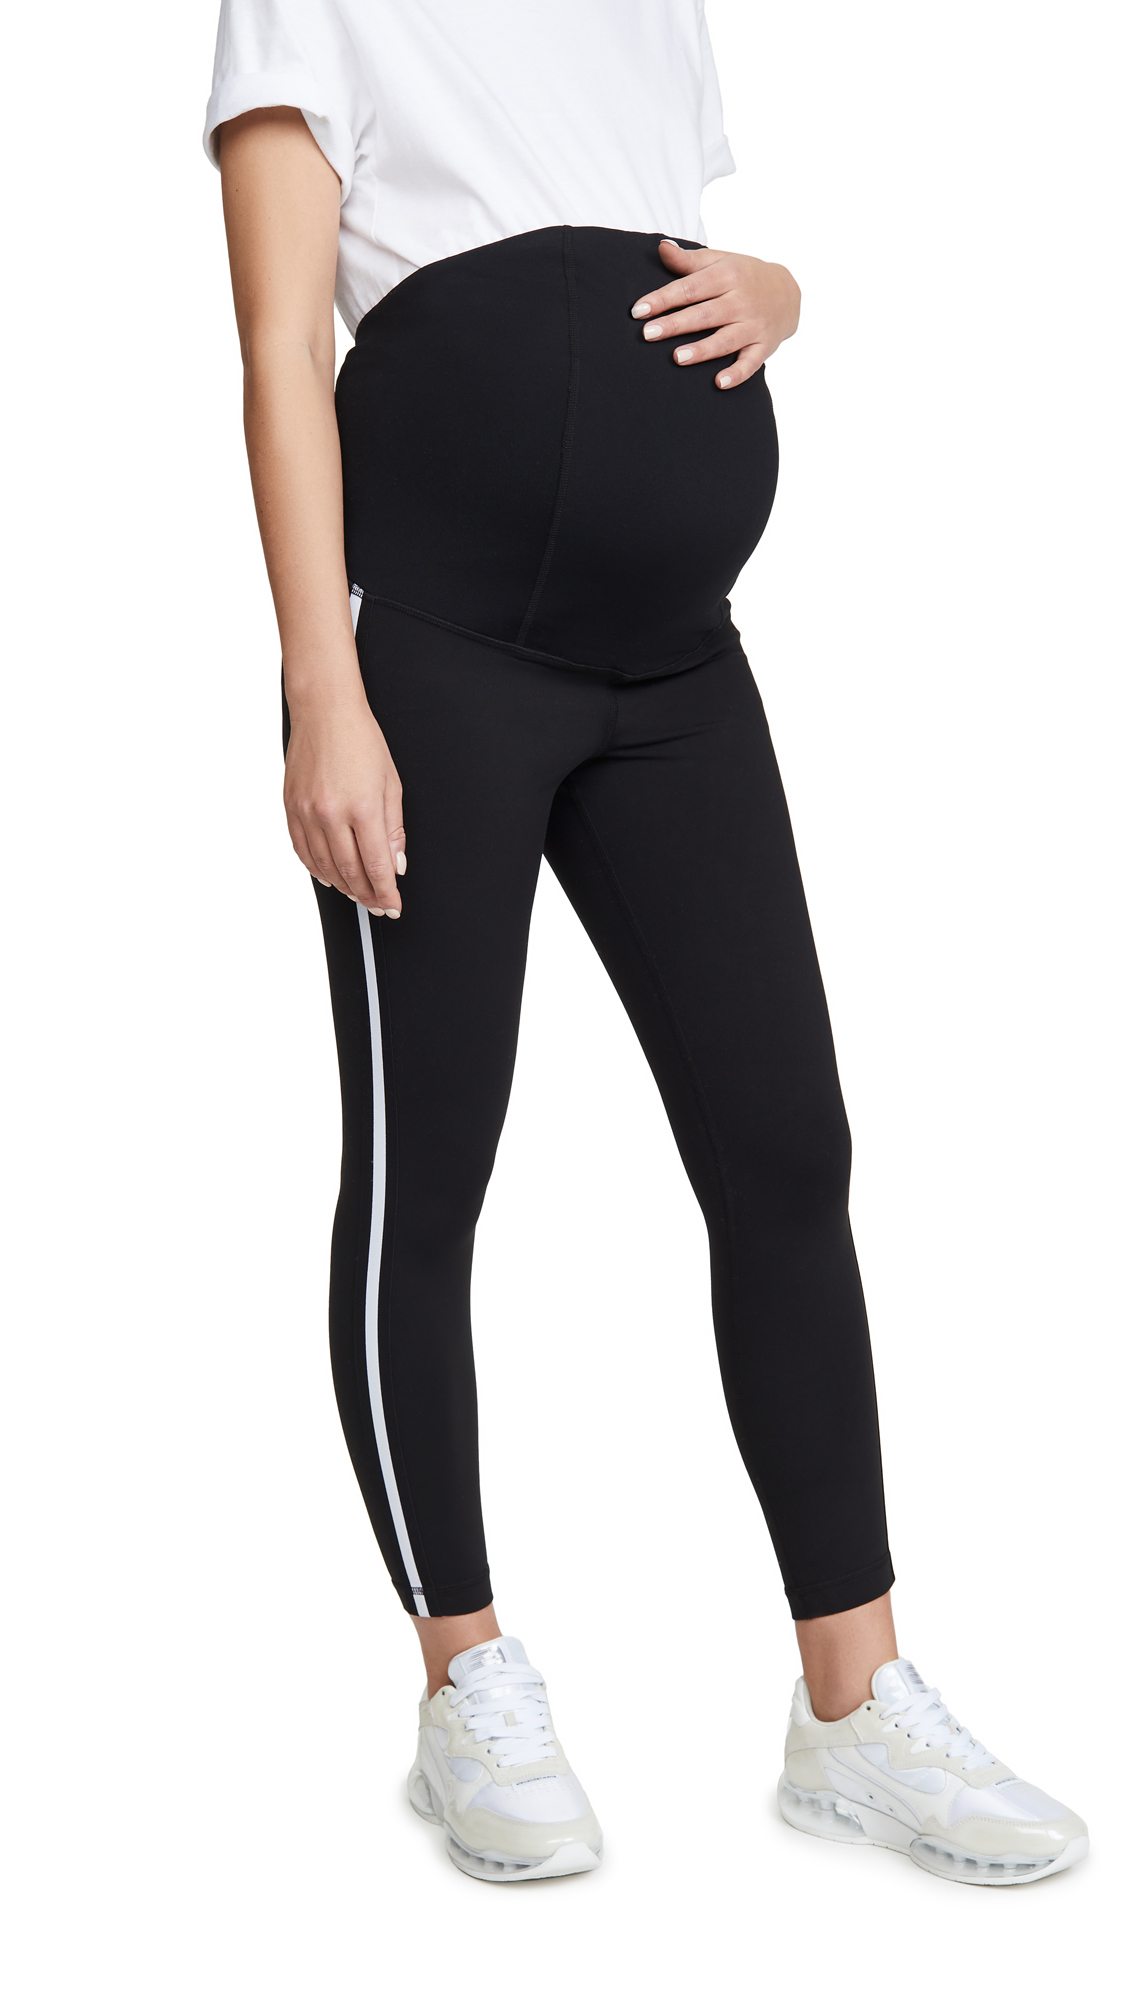 Ingrid & Isabel Active 7/8 Tuxedo Leggings